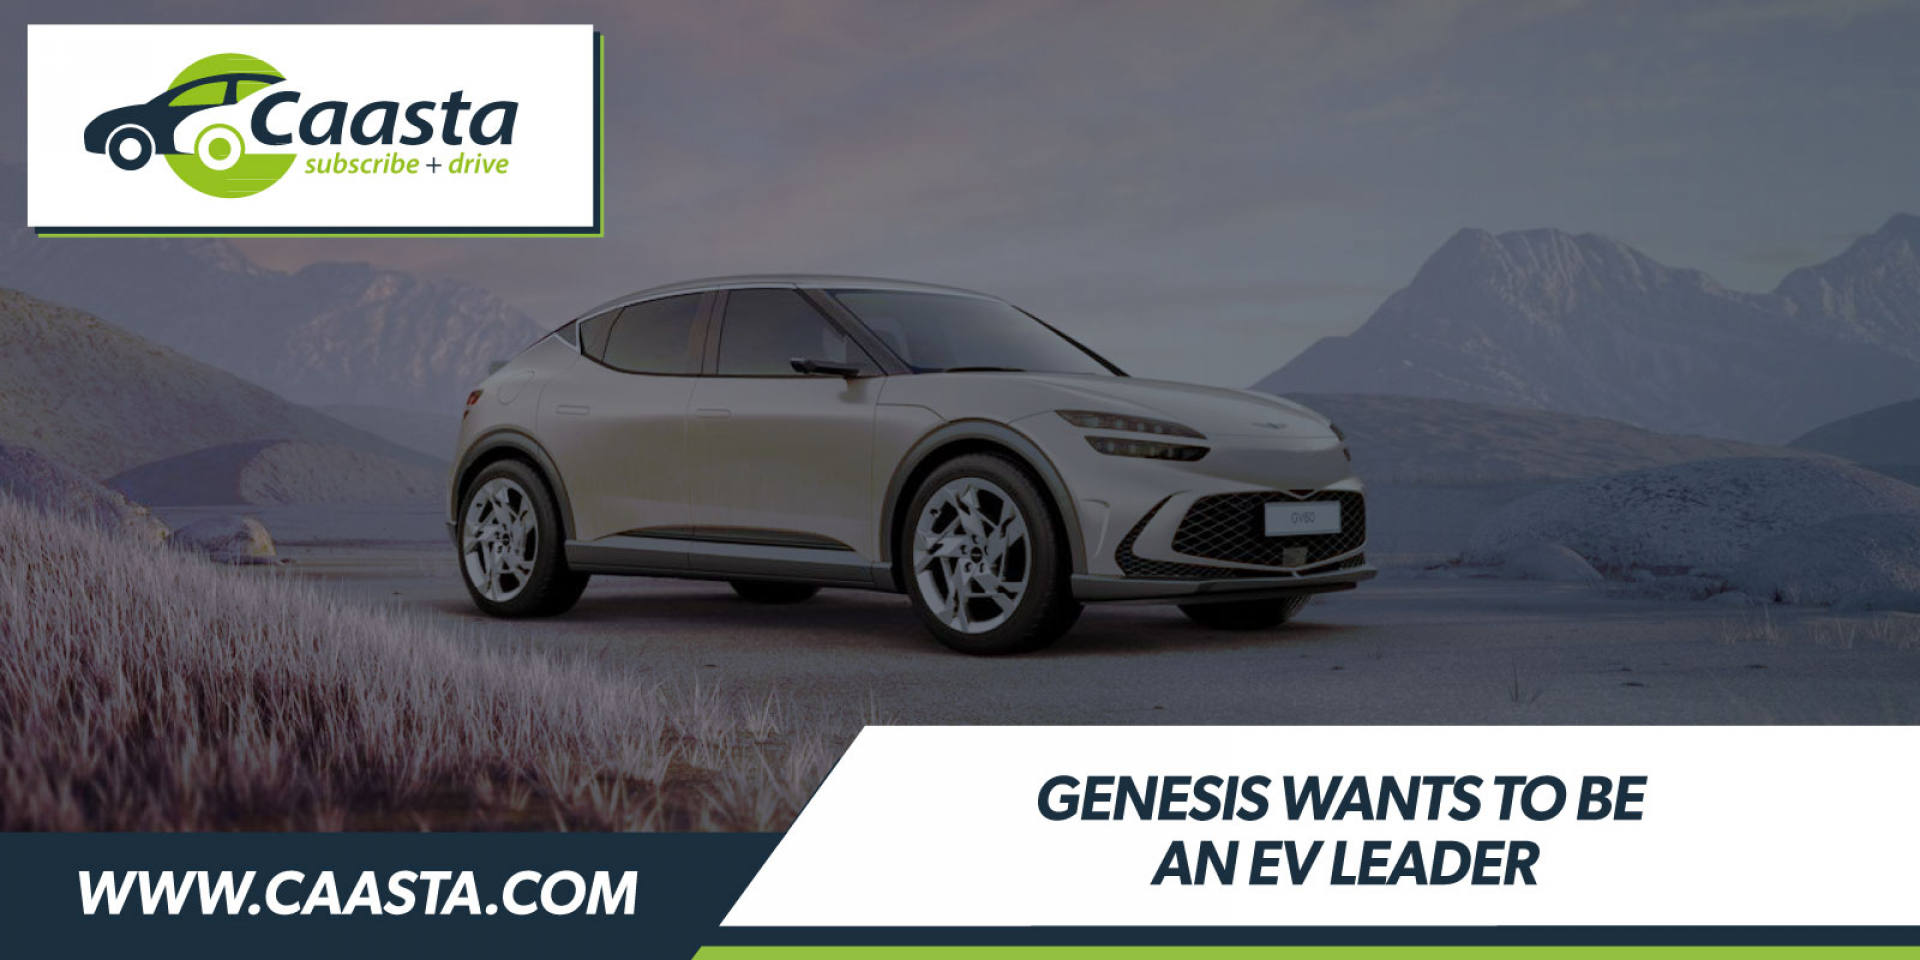 Genesis aims to become an EV leader